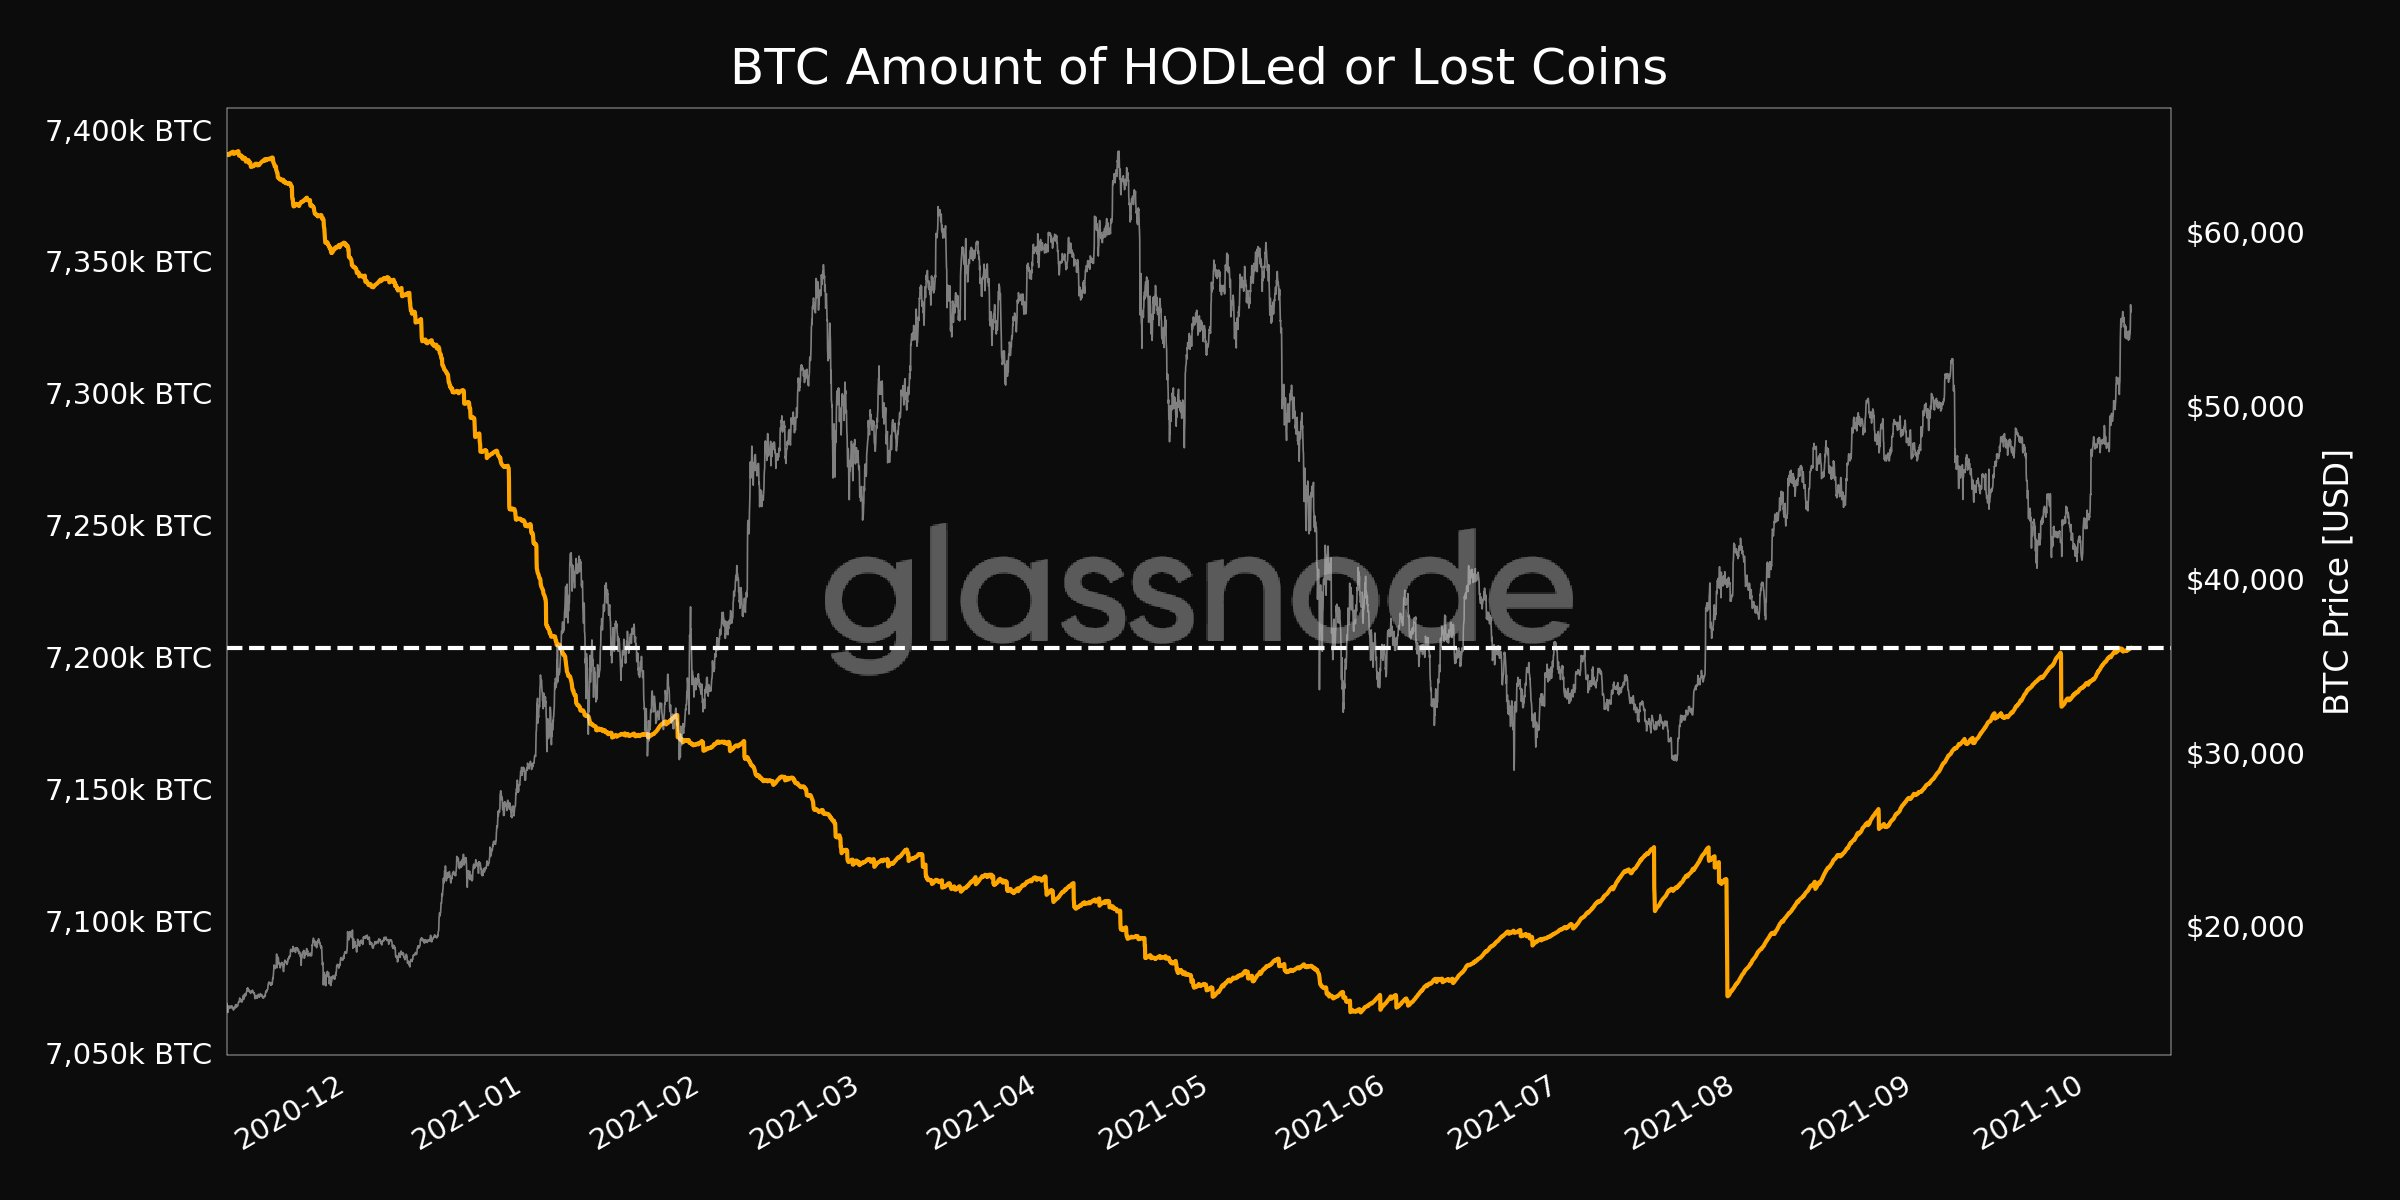 Hodled and Lost Coins chart. Source: Glassnode